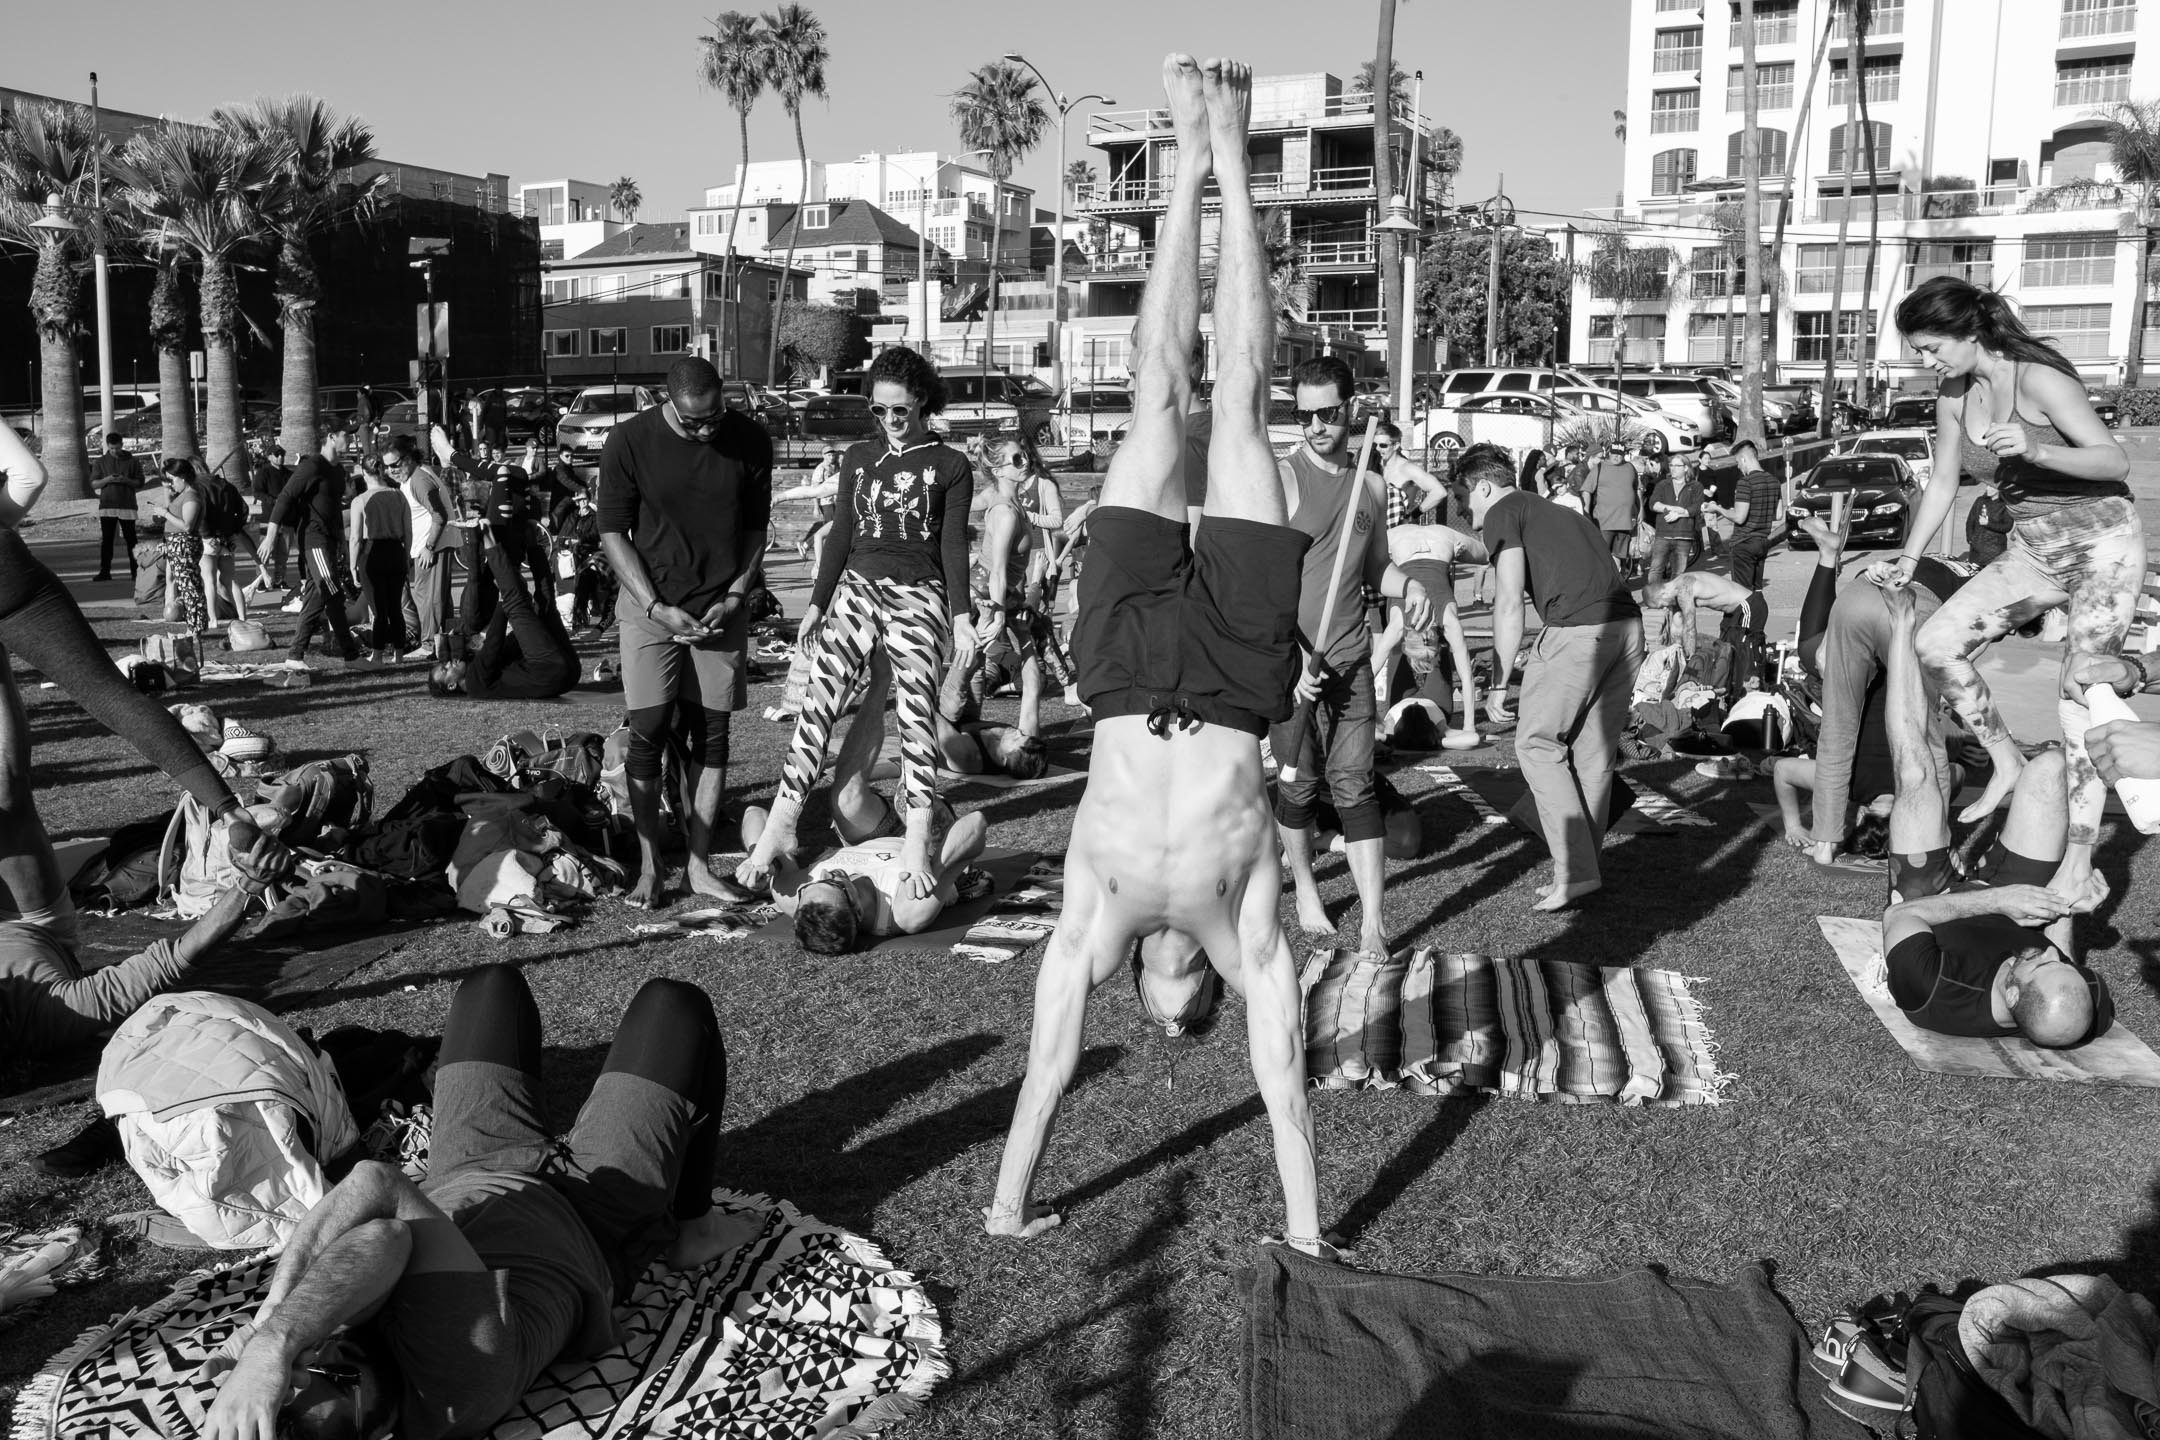 WorkoutManSantaMonicaFujiXPro1.12.20copy